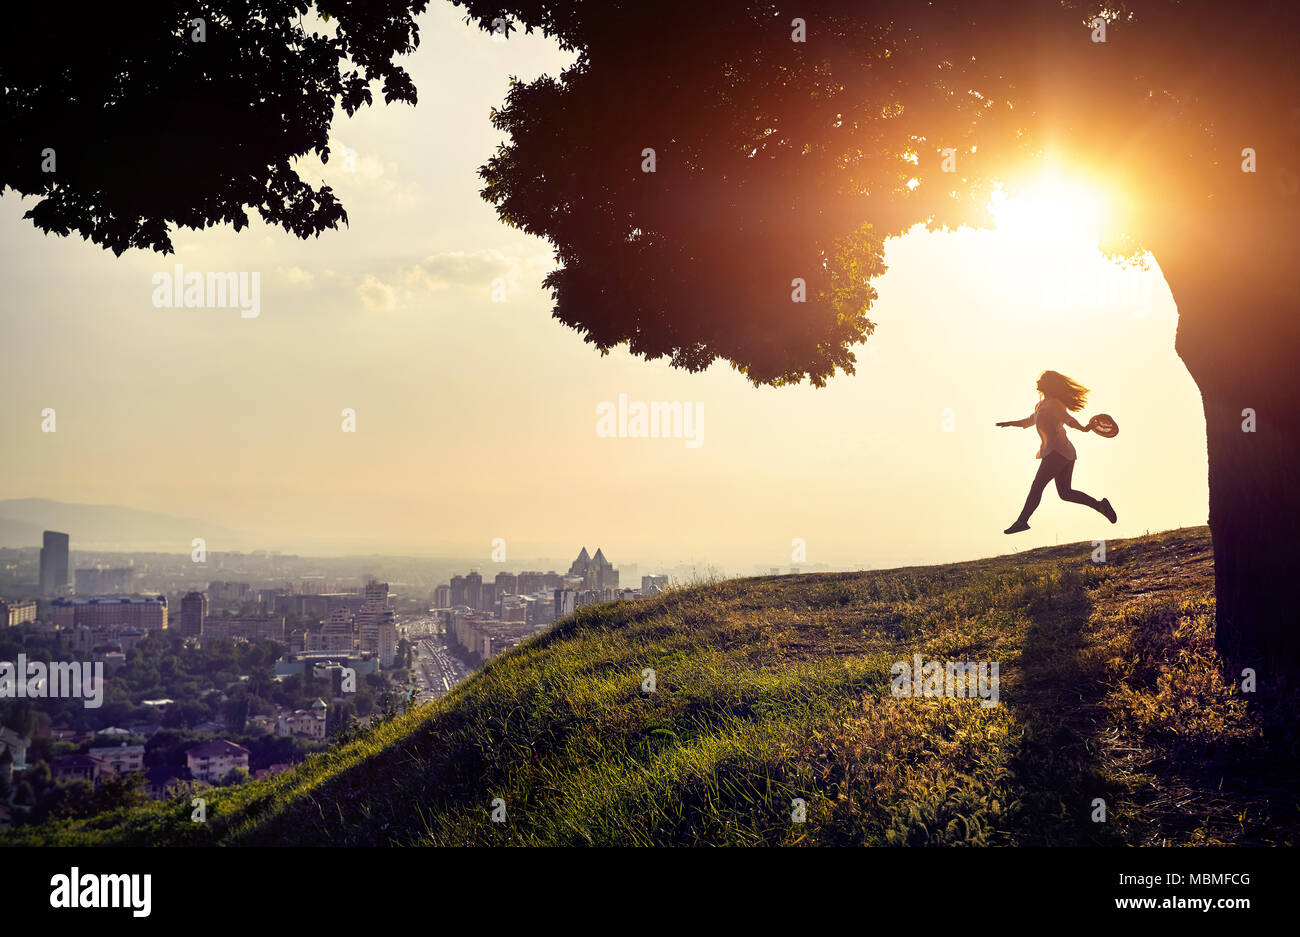 Woman in silhouette running with hat in her hand at the sunset city view background. City life concept. - Stock Image